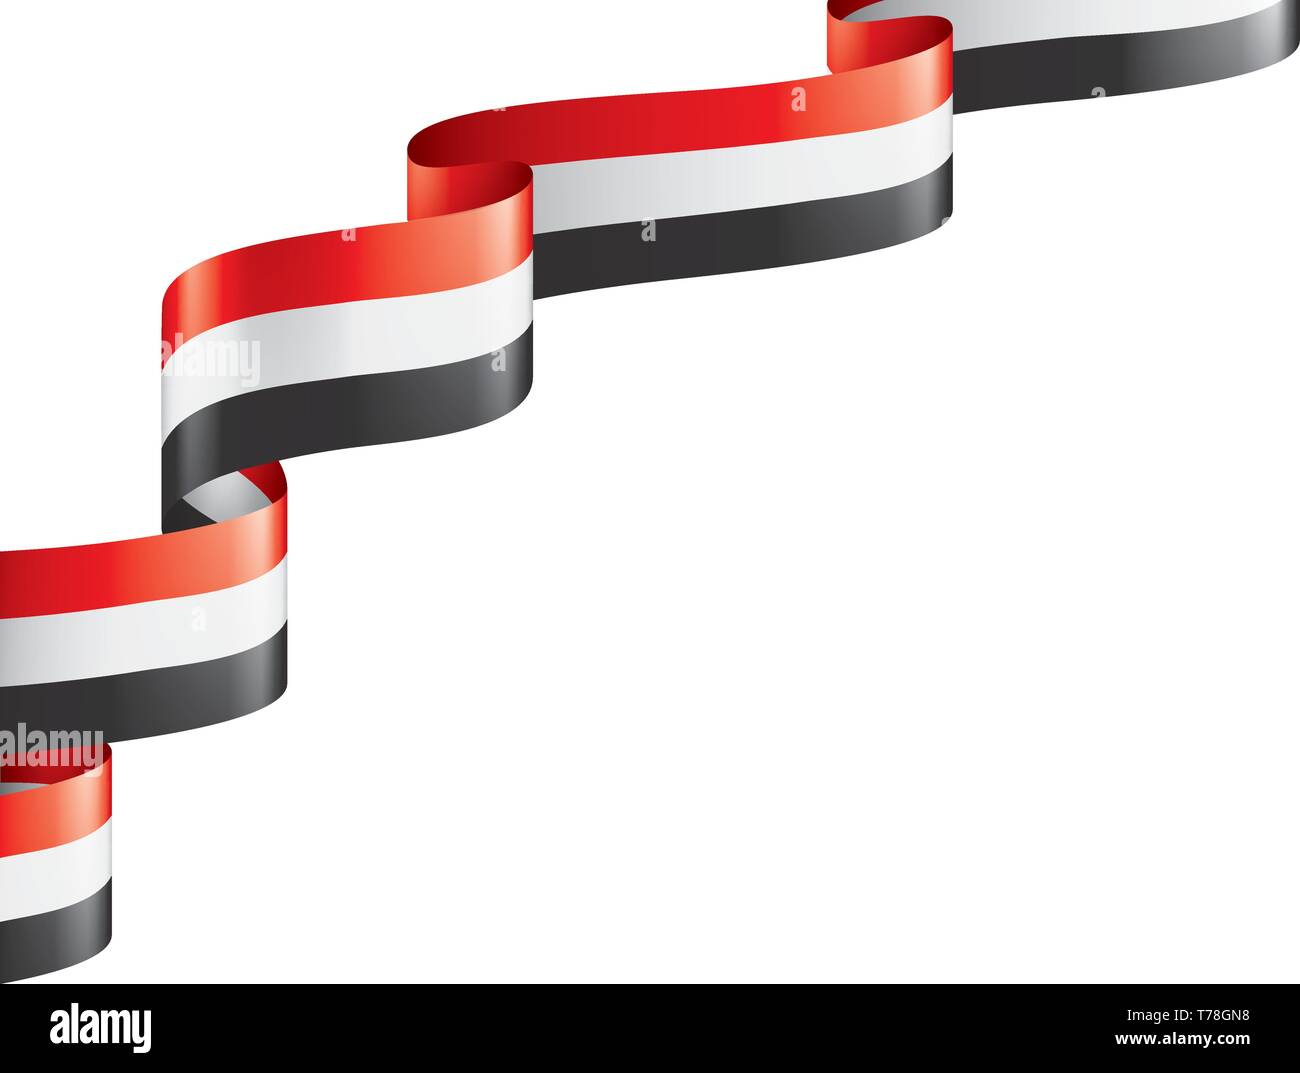 Yemeni flag, vector illustration on a white background. Stock Vector